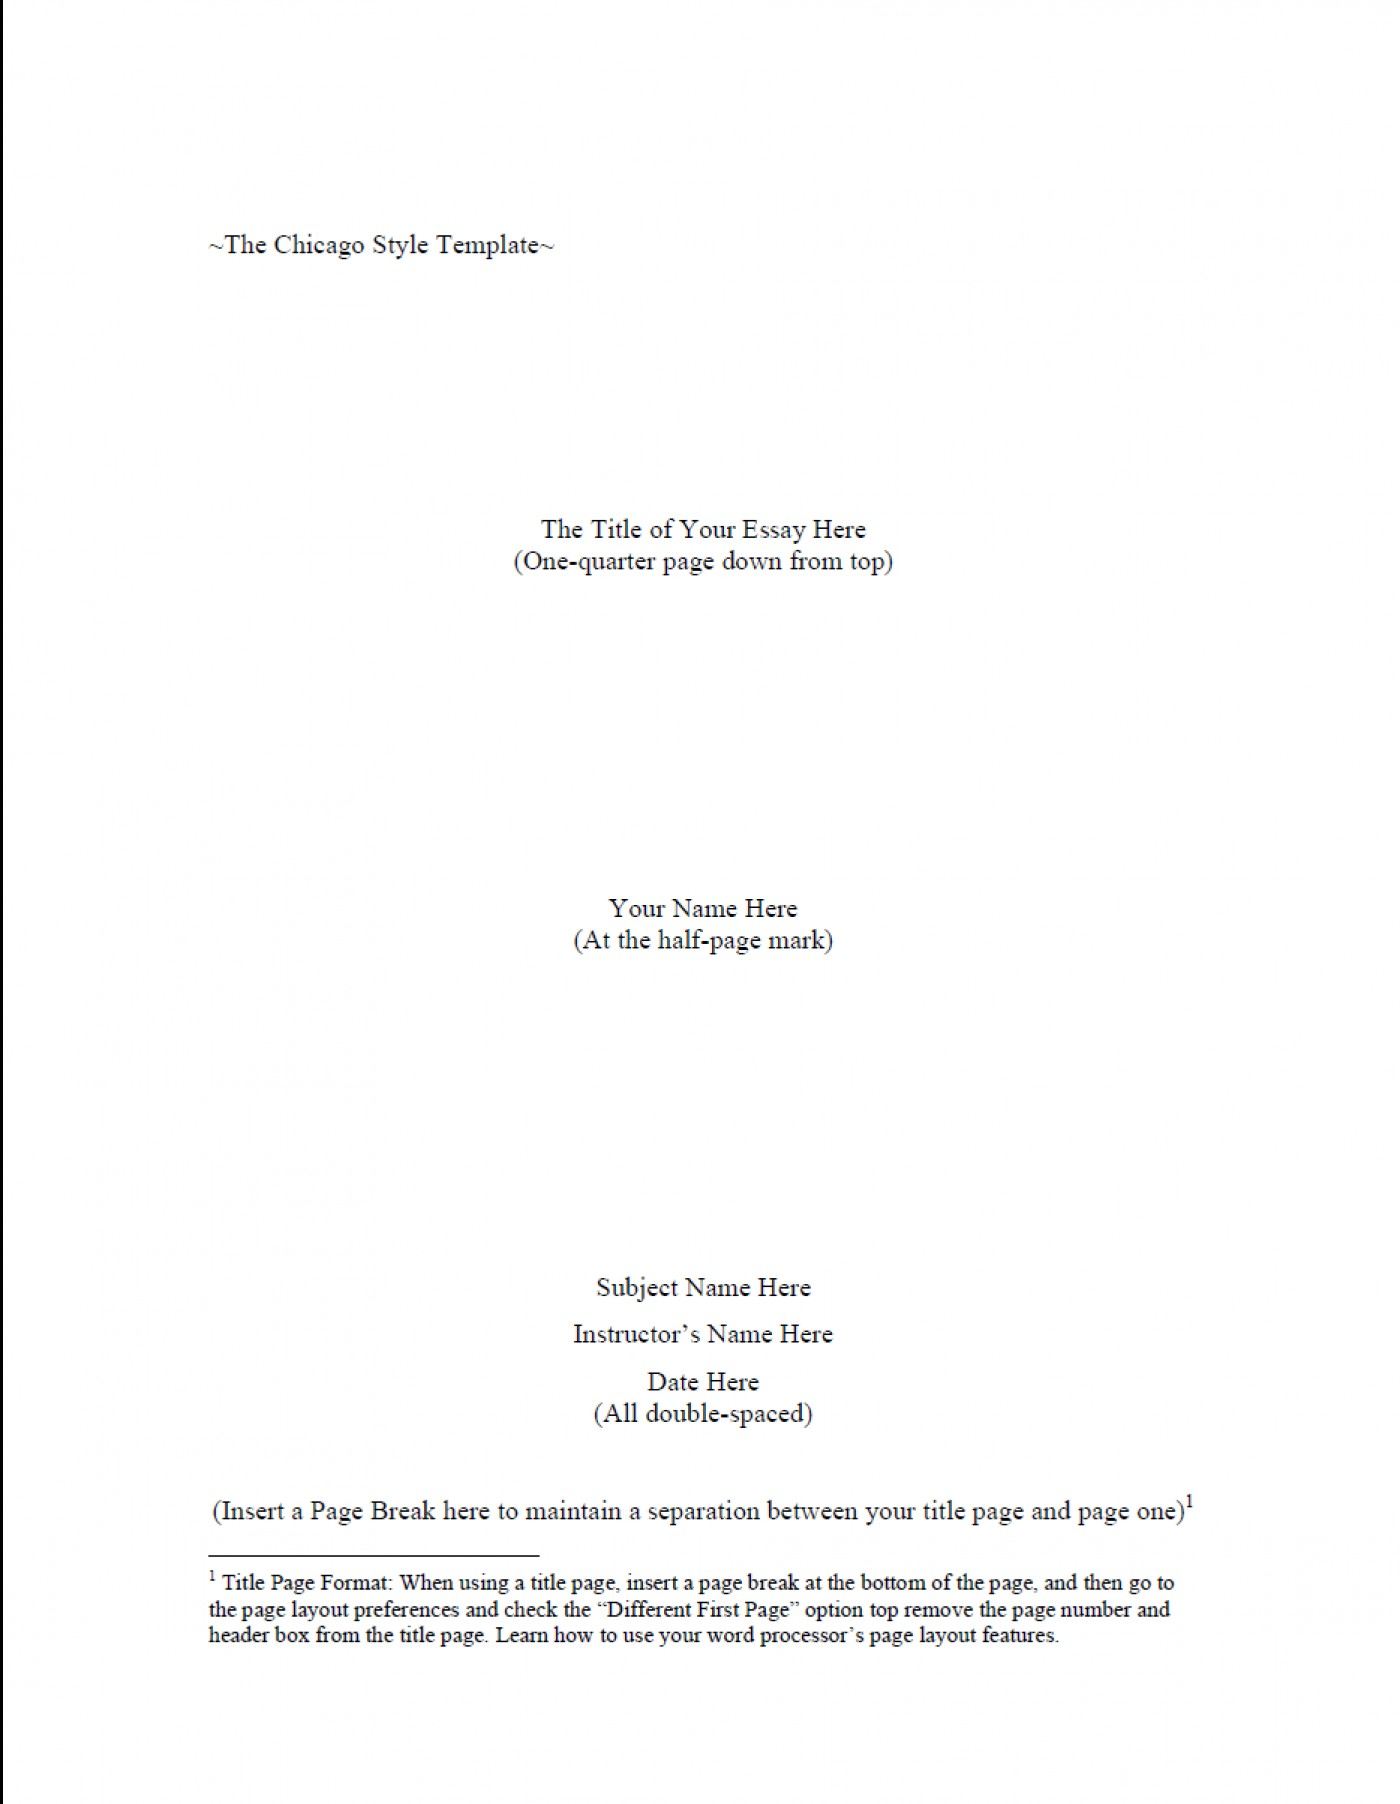 028 Research Paper Chicago Style In Text Citation Sample Paper1 Wondrous 1400